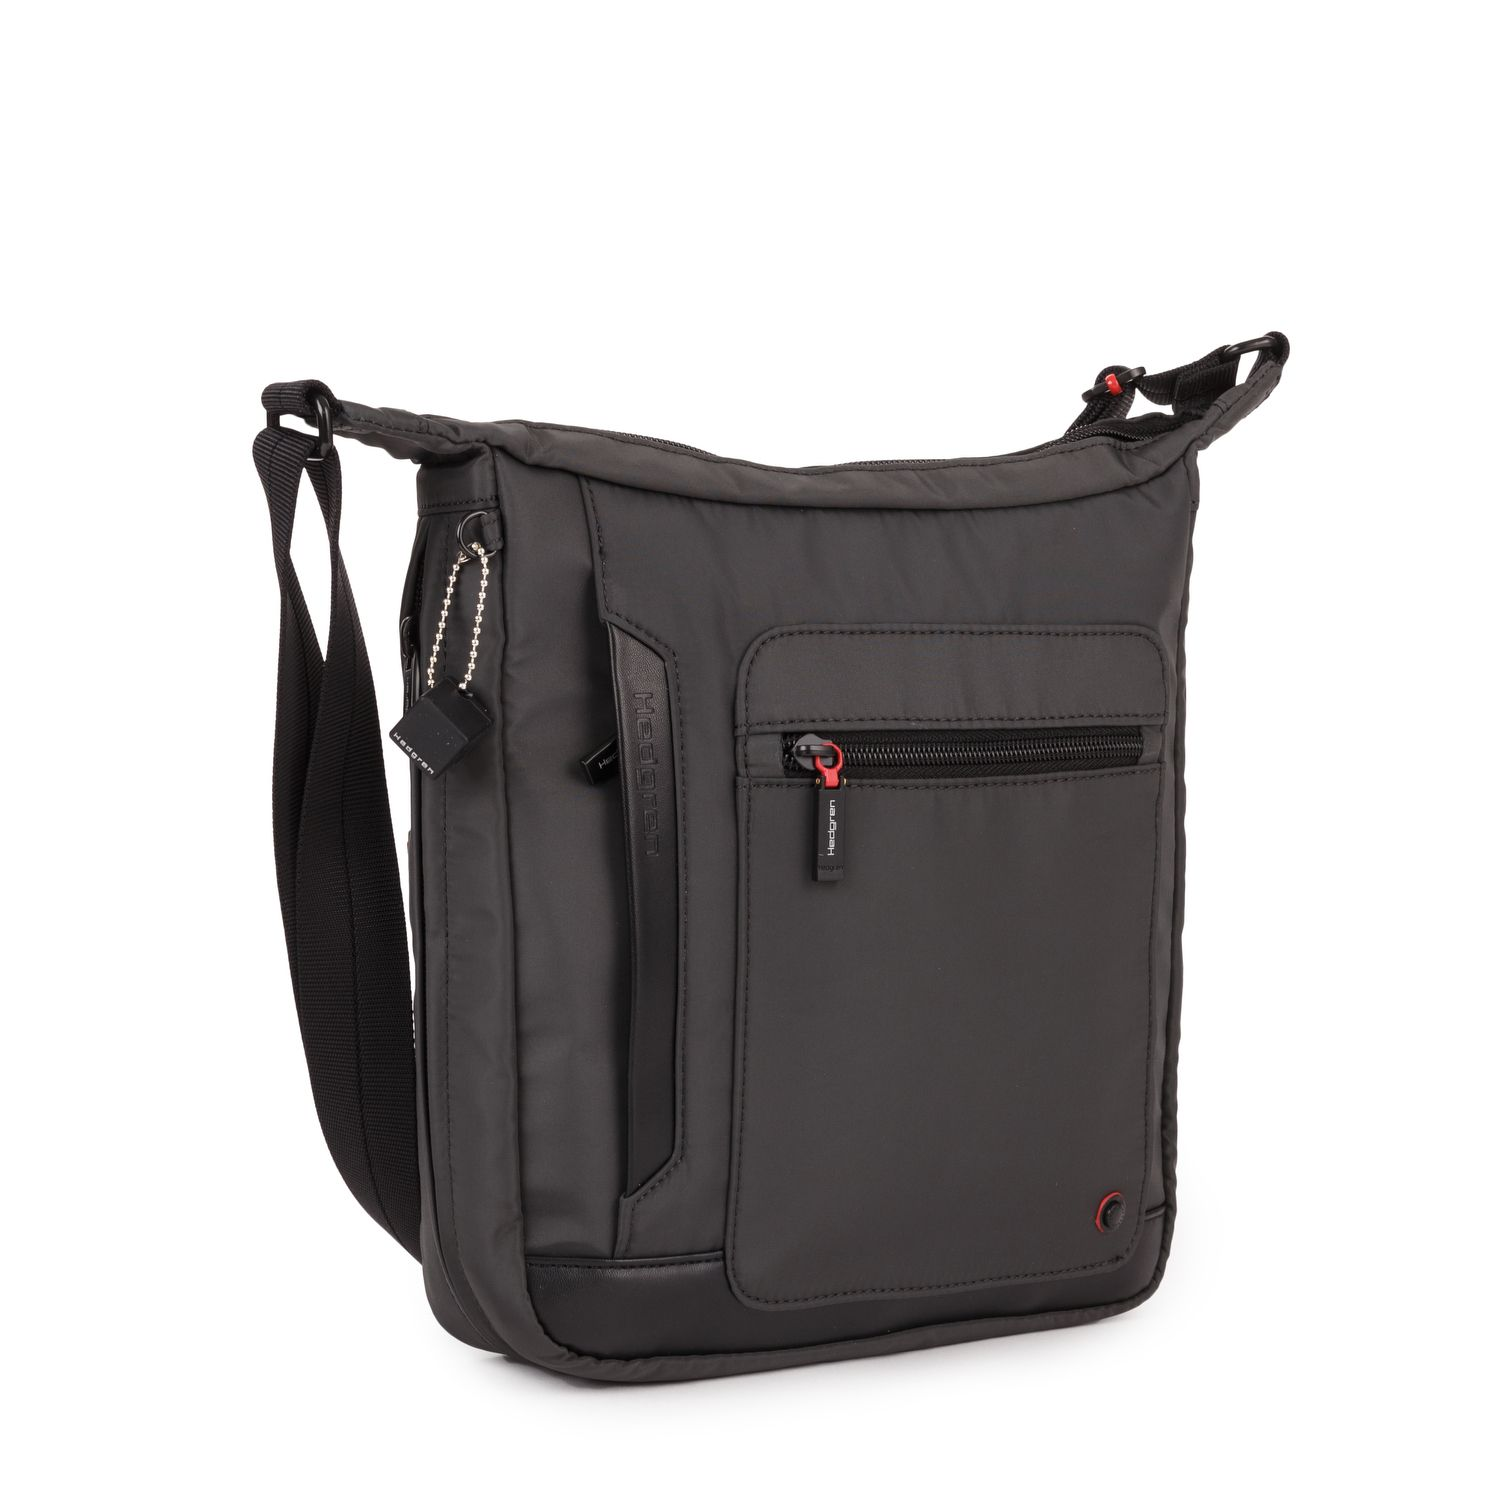 The external vertical crossover is a medium-sized bag which will fit your tablet. It has the ideal shape for daily use. not too big, yet still plenty of storage possibilities.